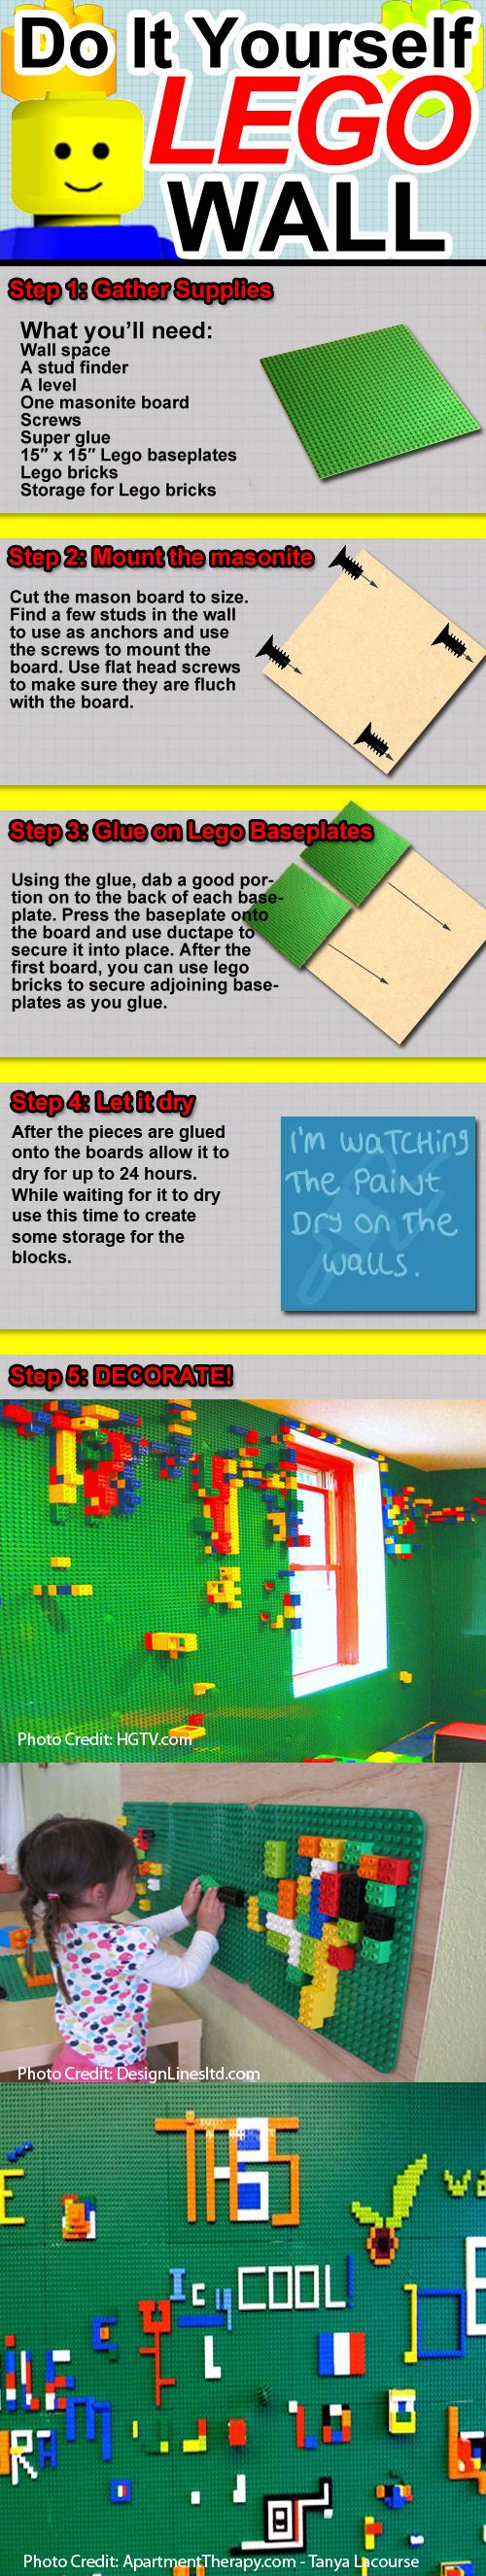 best ideas for the kids images on pinterest child room